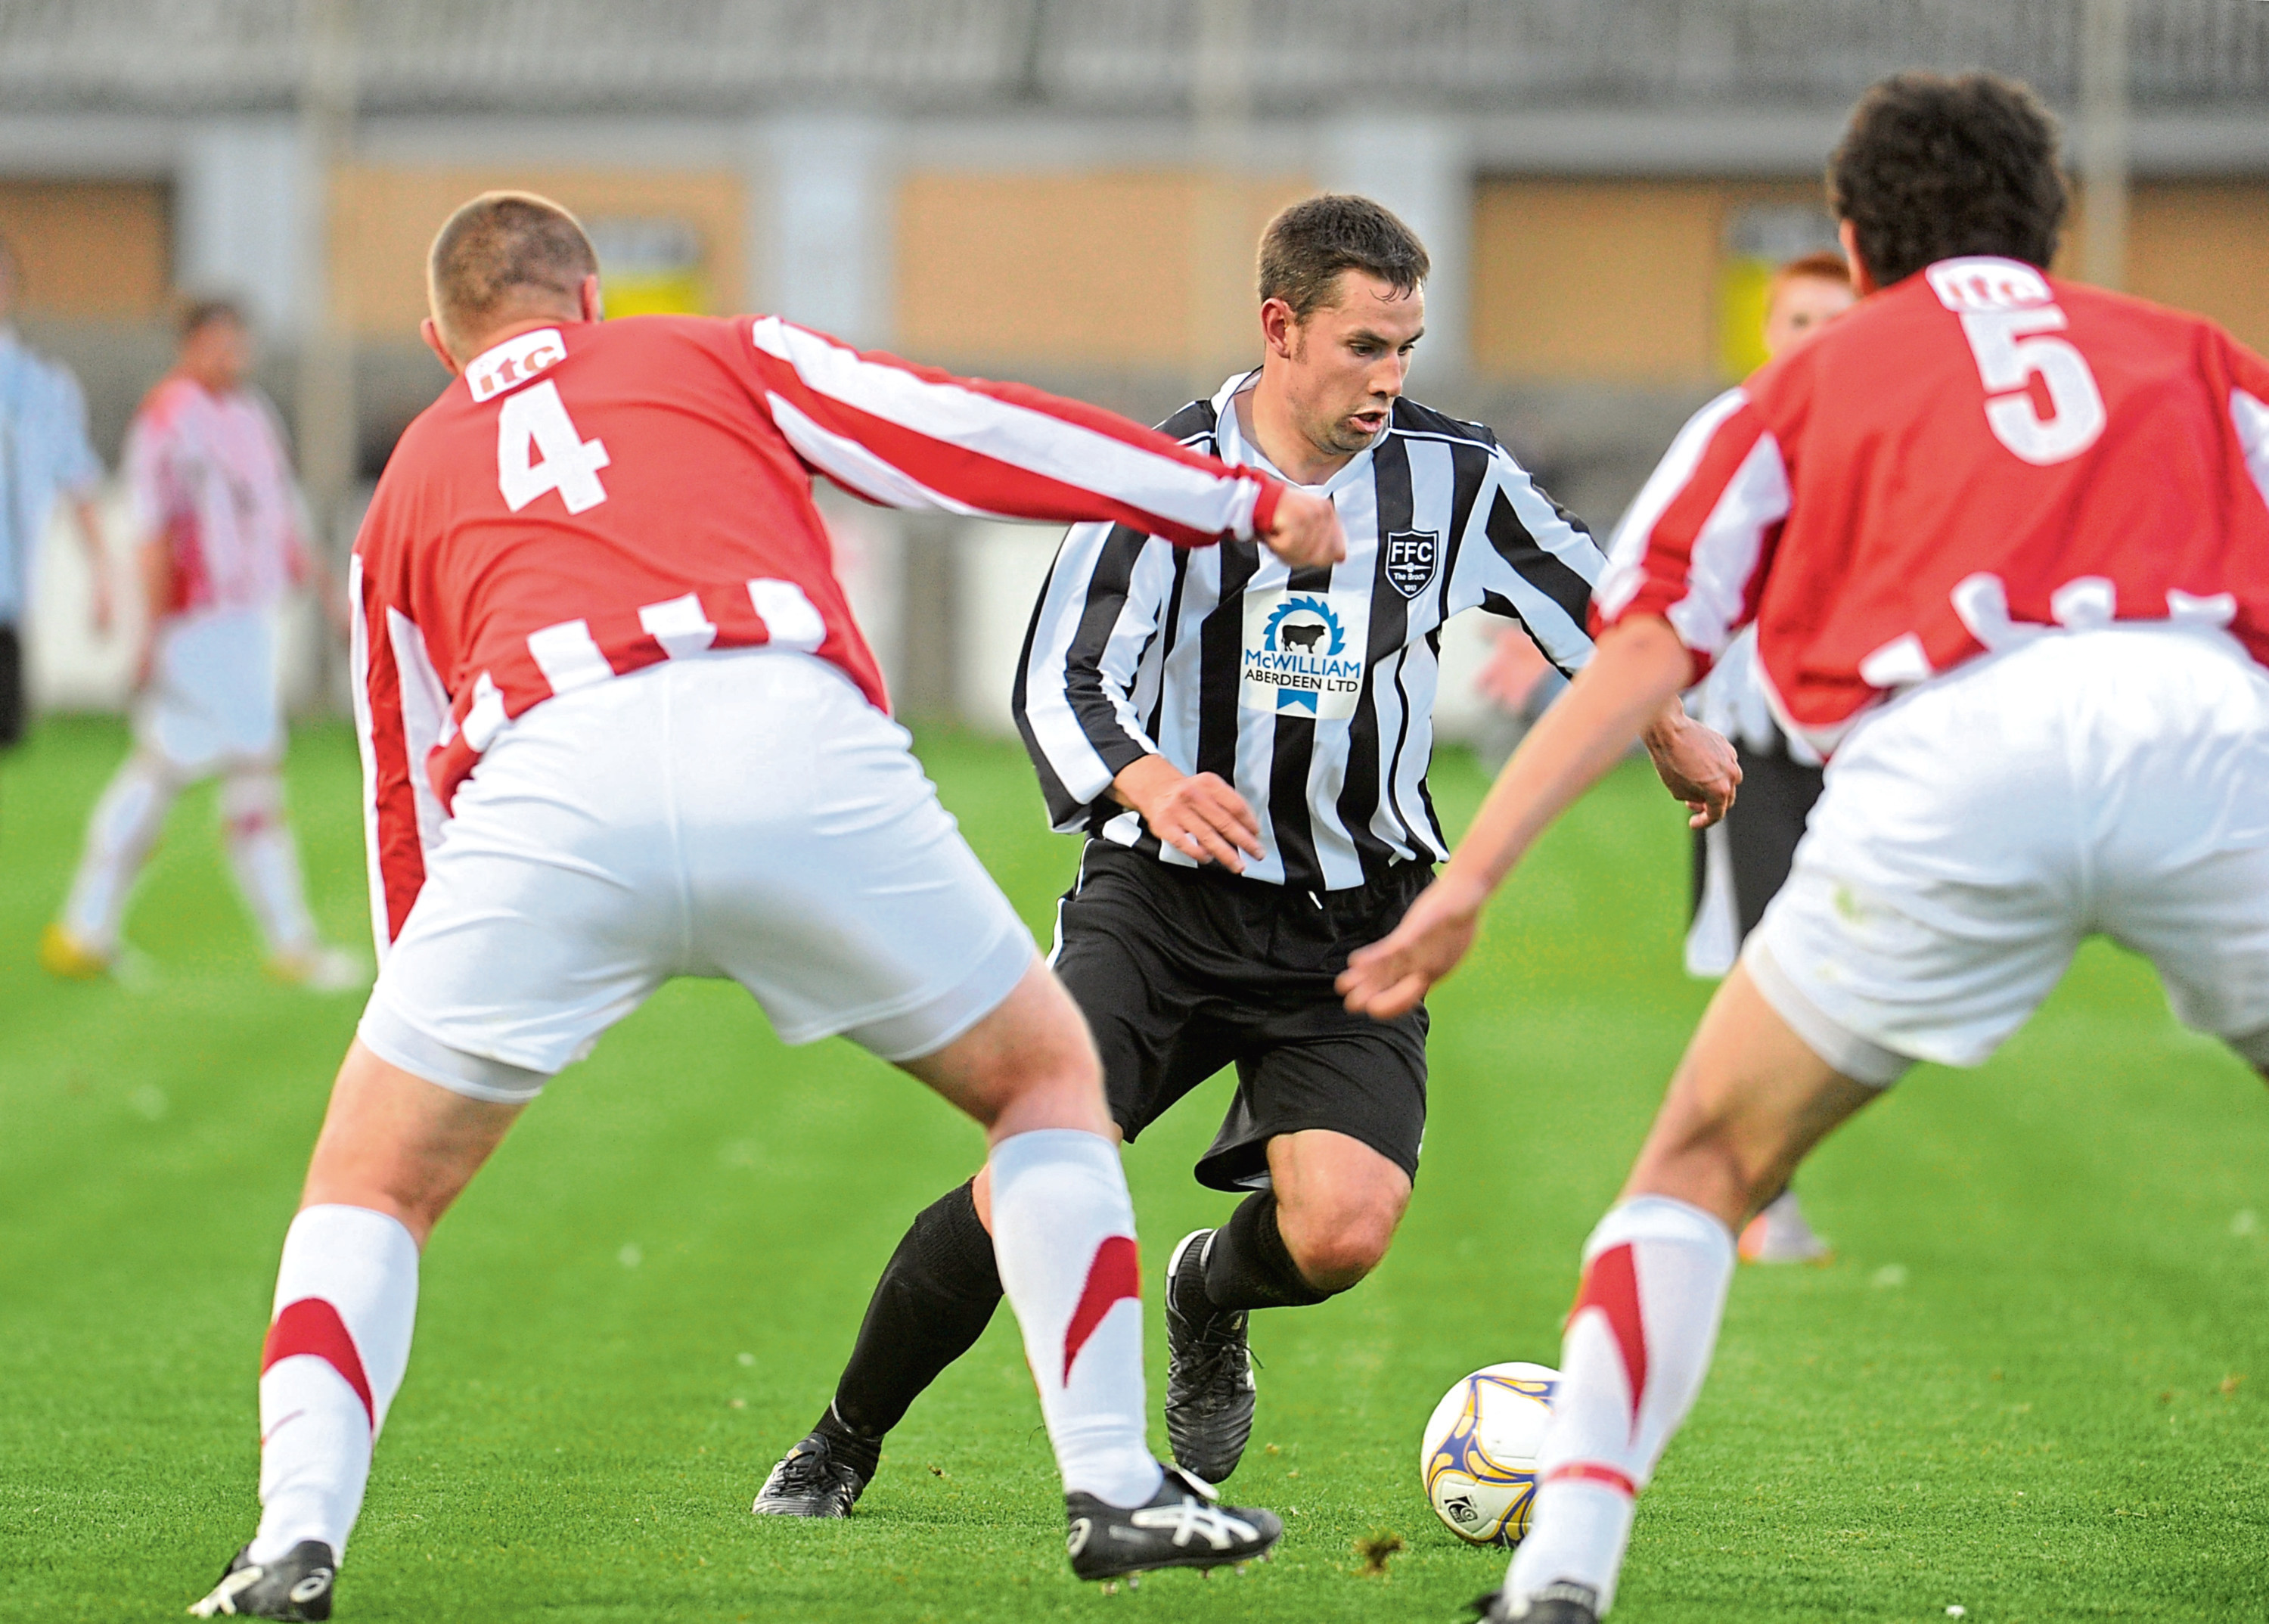 Fraserburgh's Marc Dickson (middle) in action against Formartine United.   Picture by Tim Allen    09/08/11